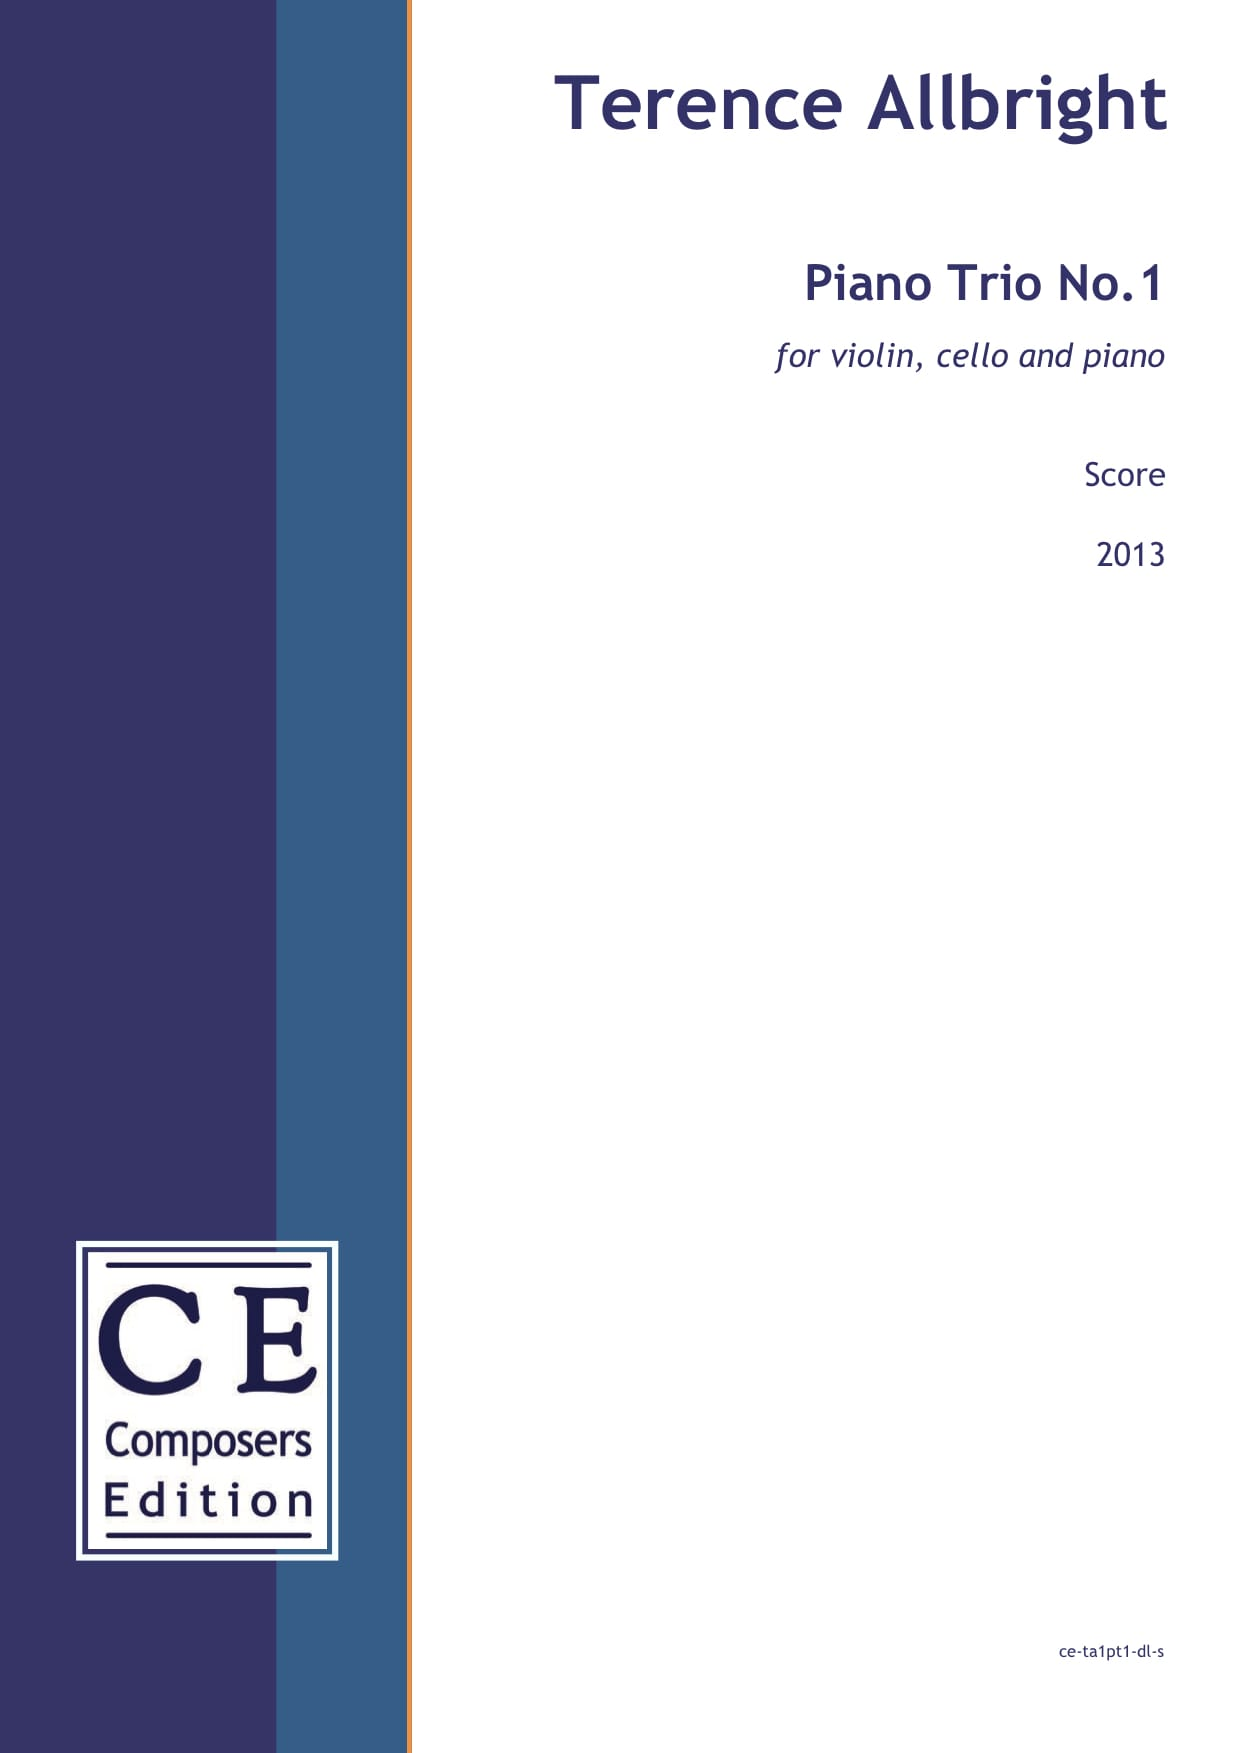 Terence Allbright: Piano Trio No.1 for violin, cello and piano